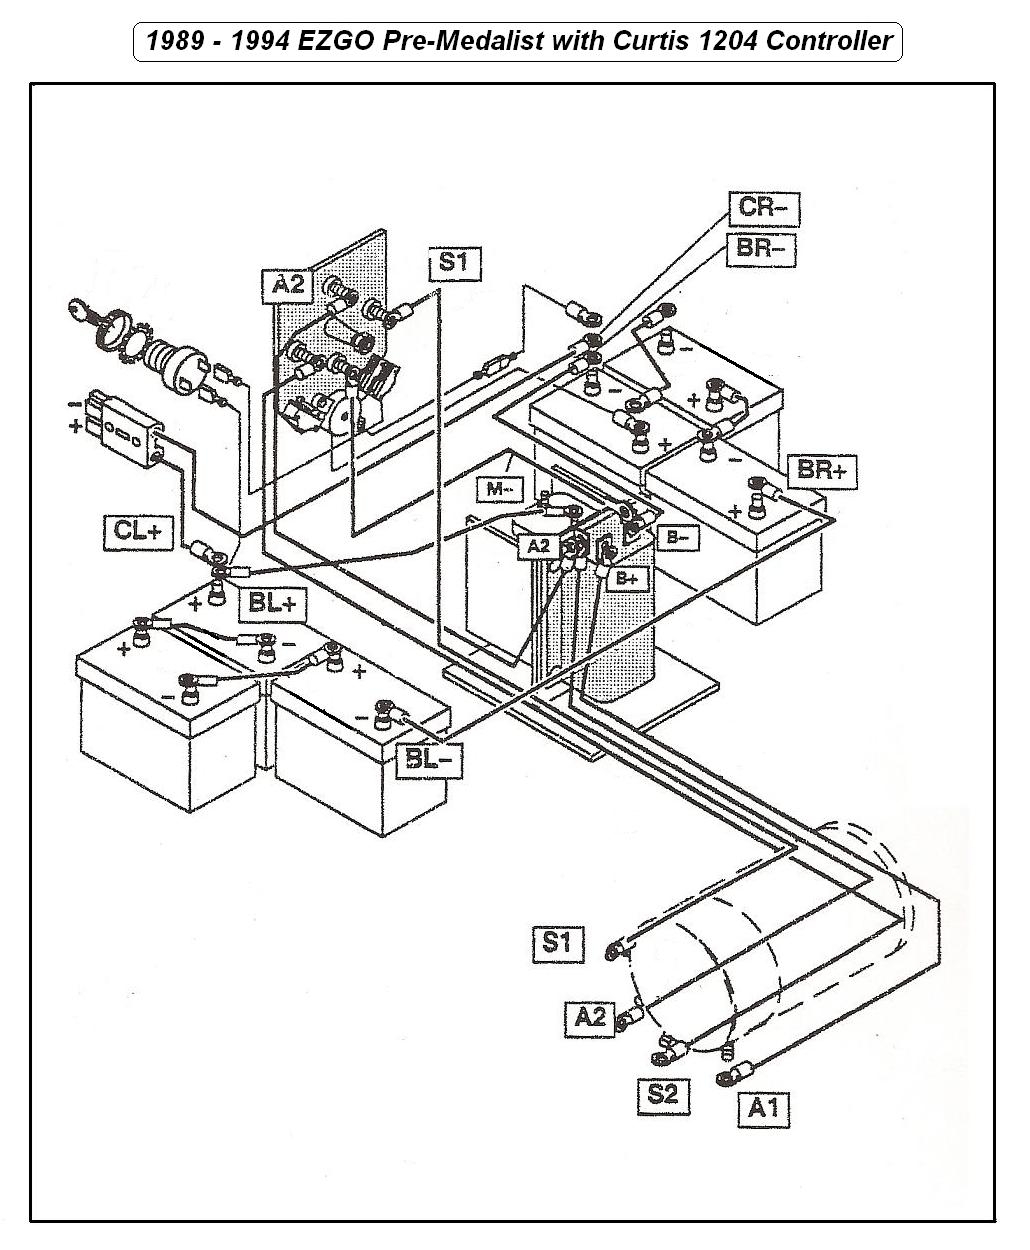 hight resolution of 1987 48 volt ezgo solenoid wiring diagram simple wiring diagrams golf cart electric diagrams pdf 48